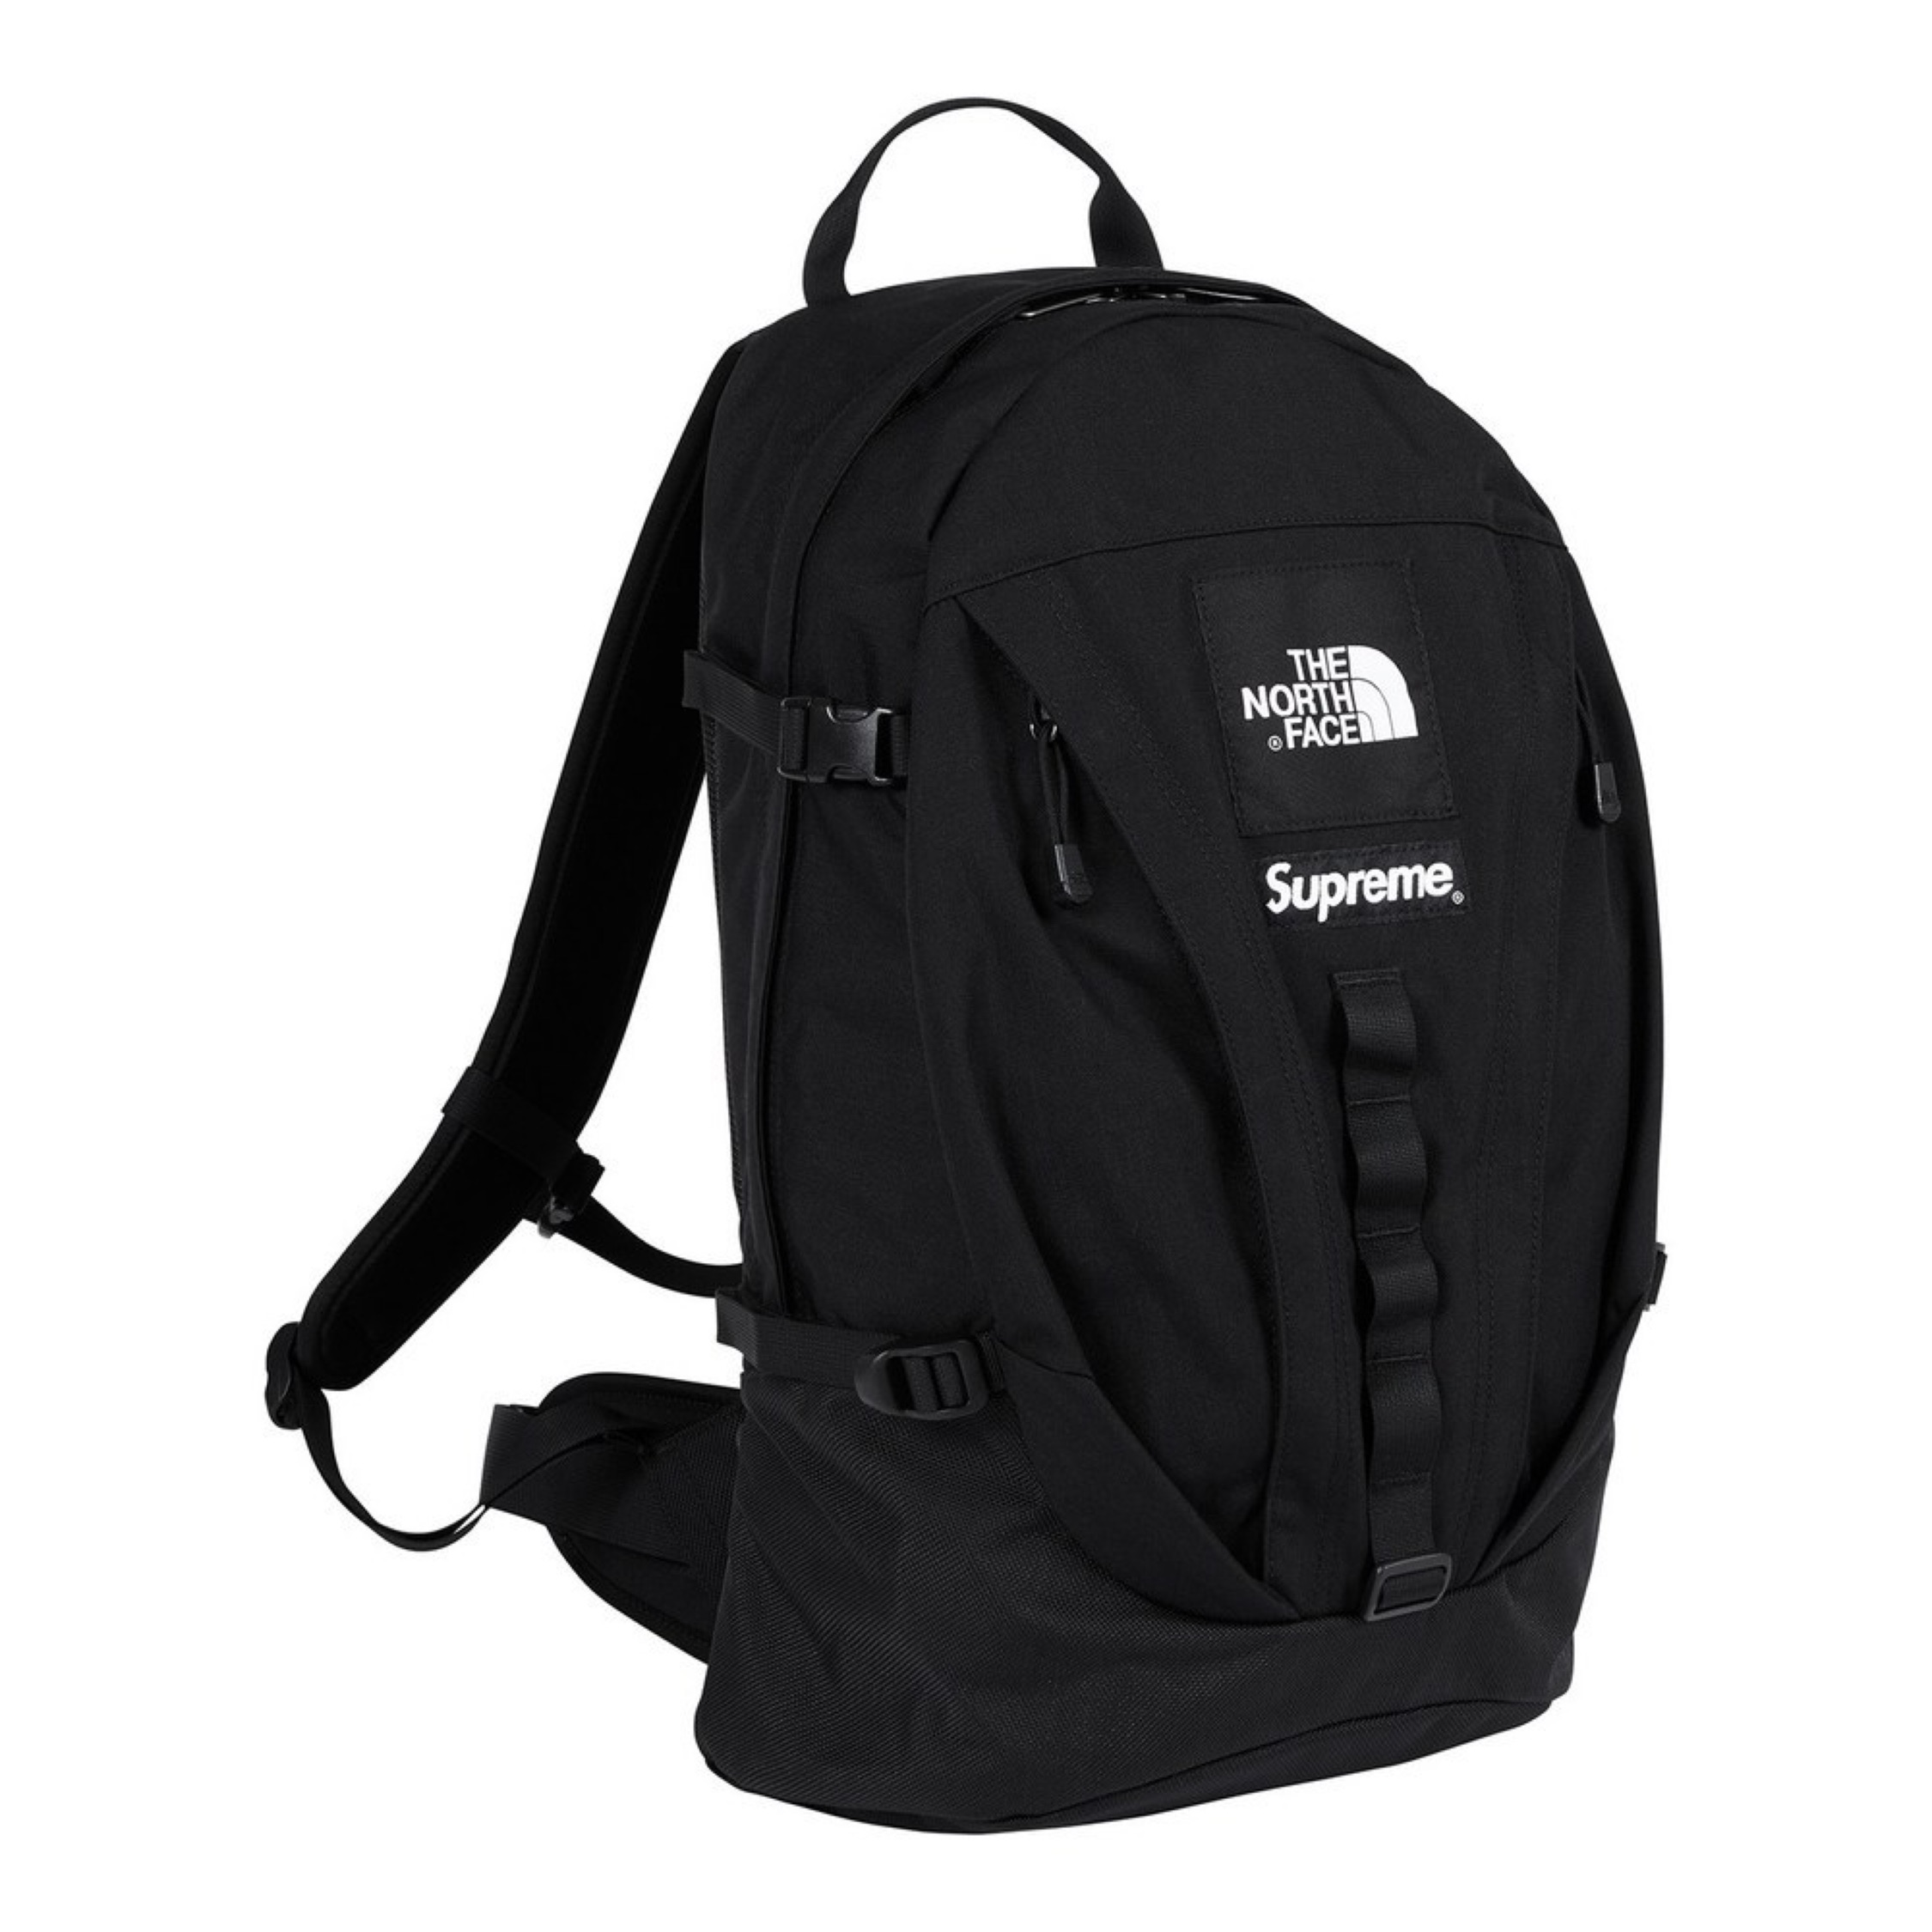 24c5df561 Supreme The North Face Expedition Backpack Black